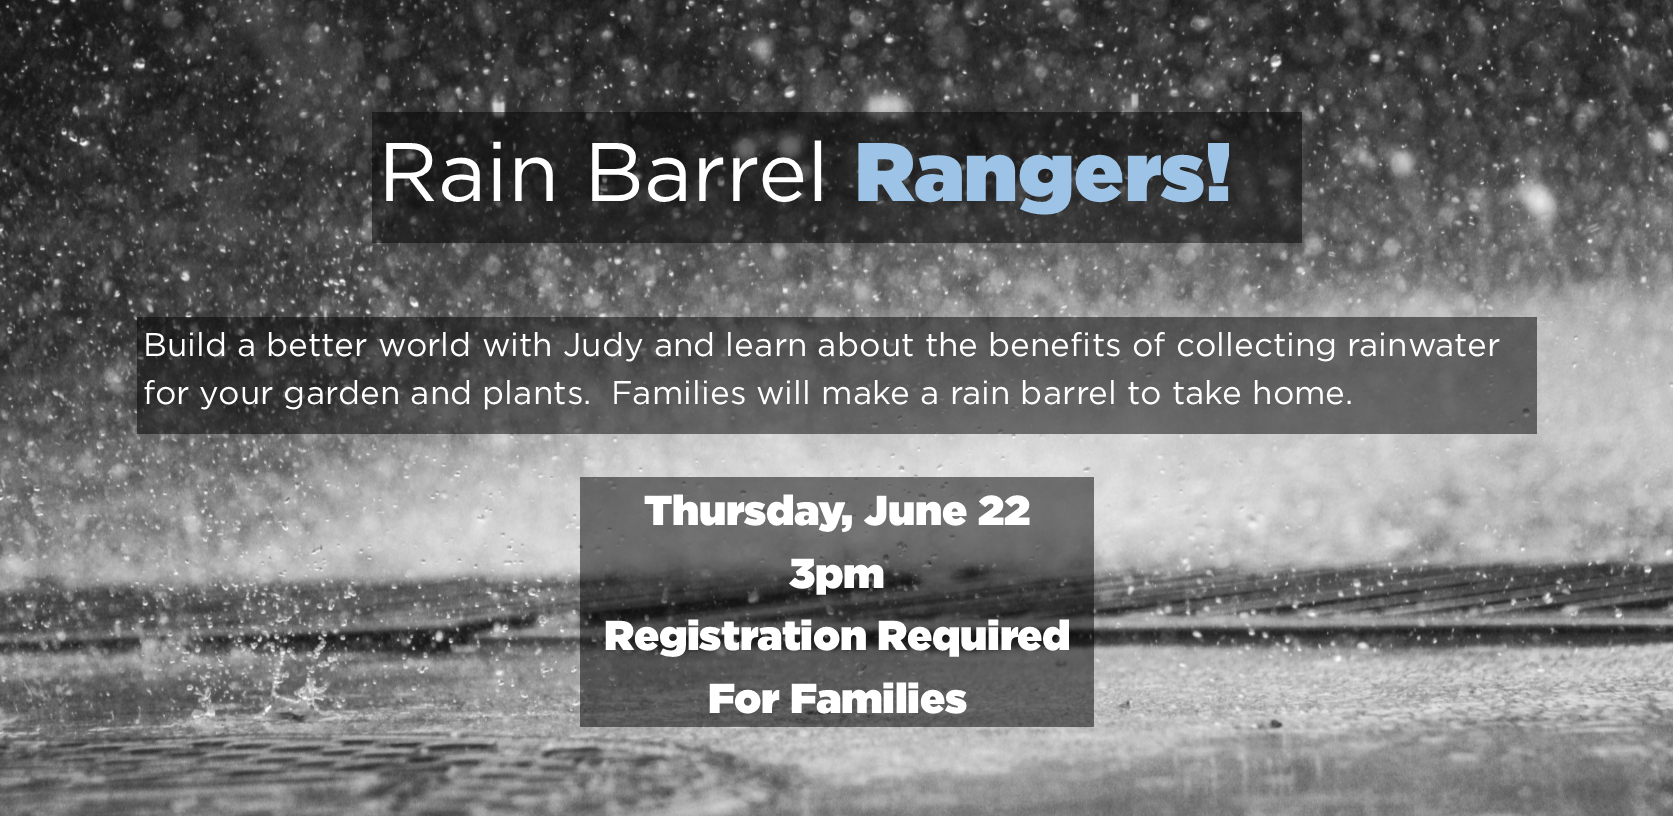 Rain Barrel Rangers